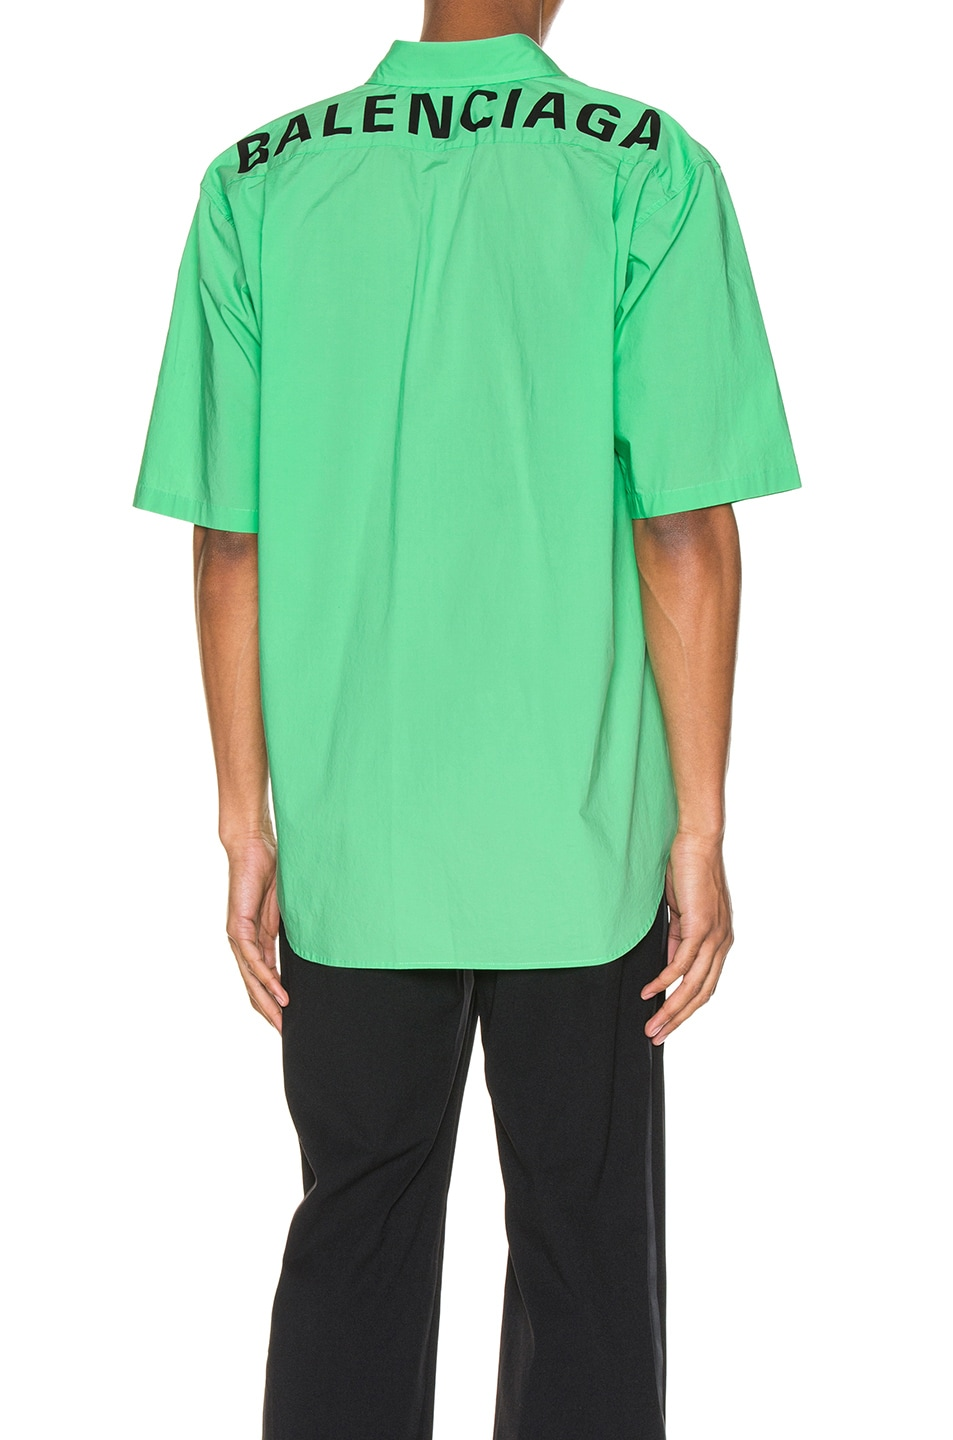 Image 1 of Balenciaga Short Sleeve Shirt in Green